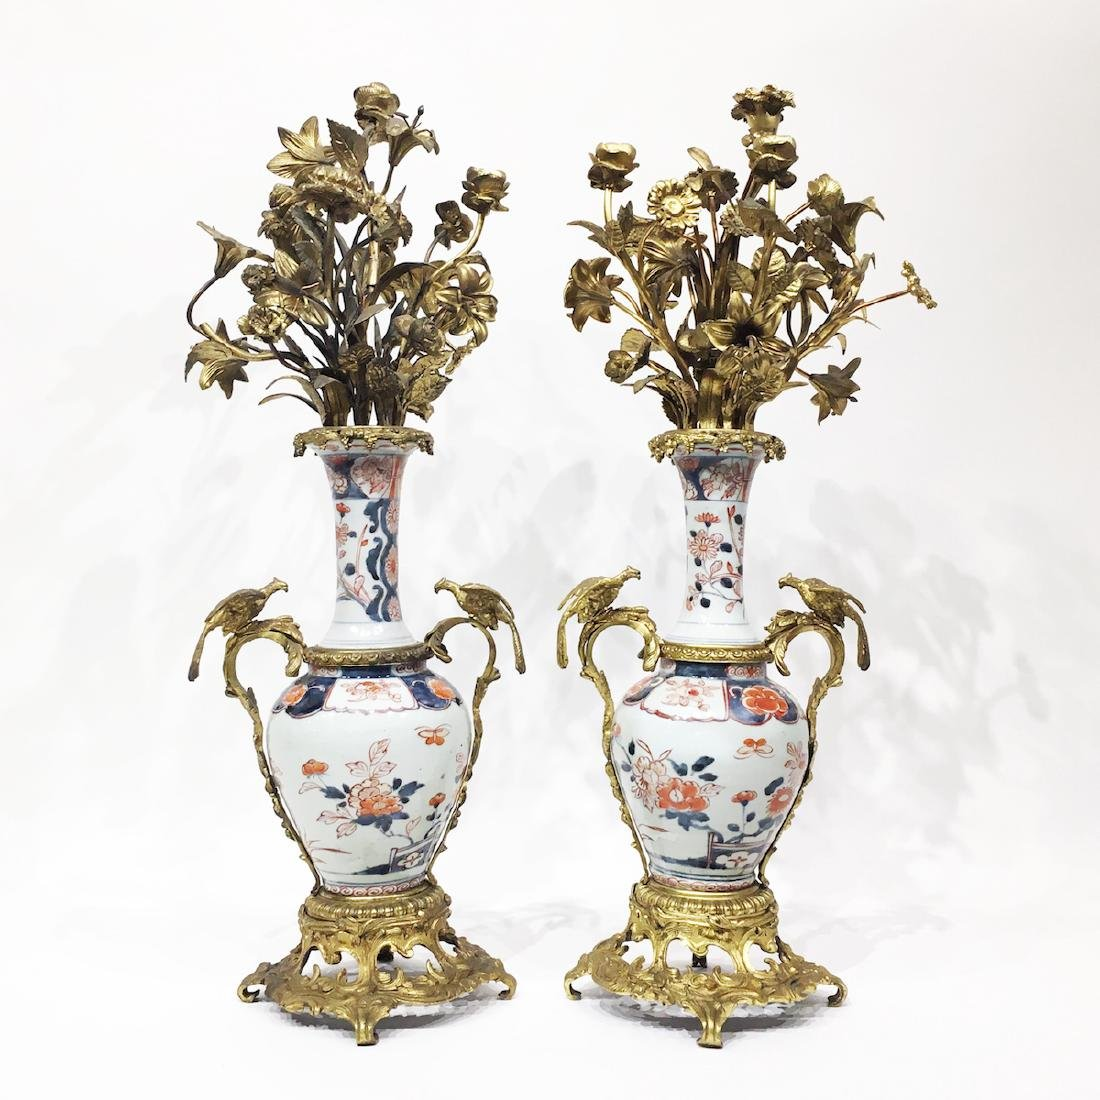 18th C. French Bronze Mounted Imari Vases